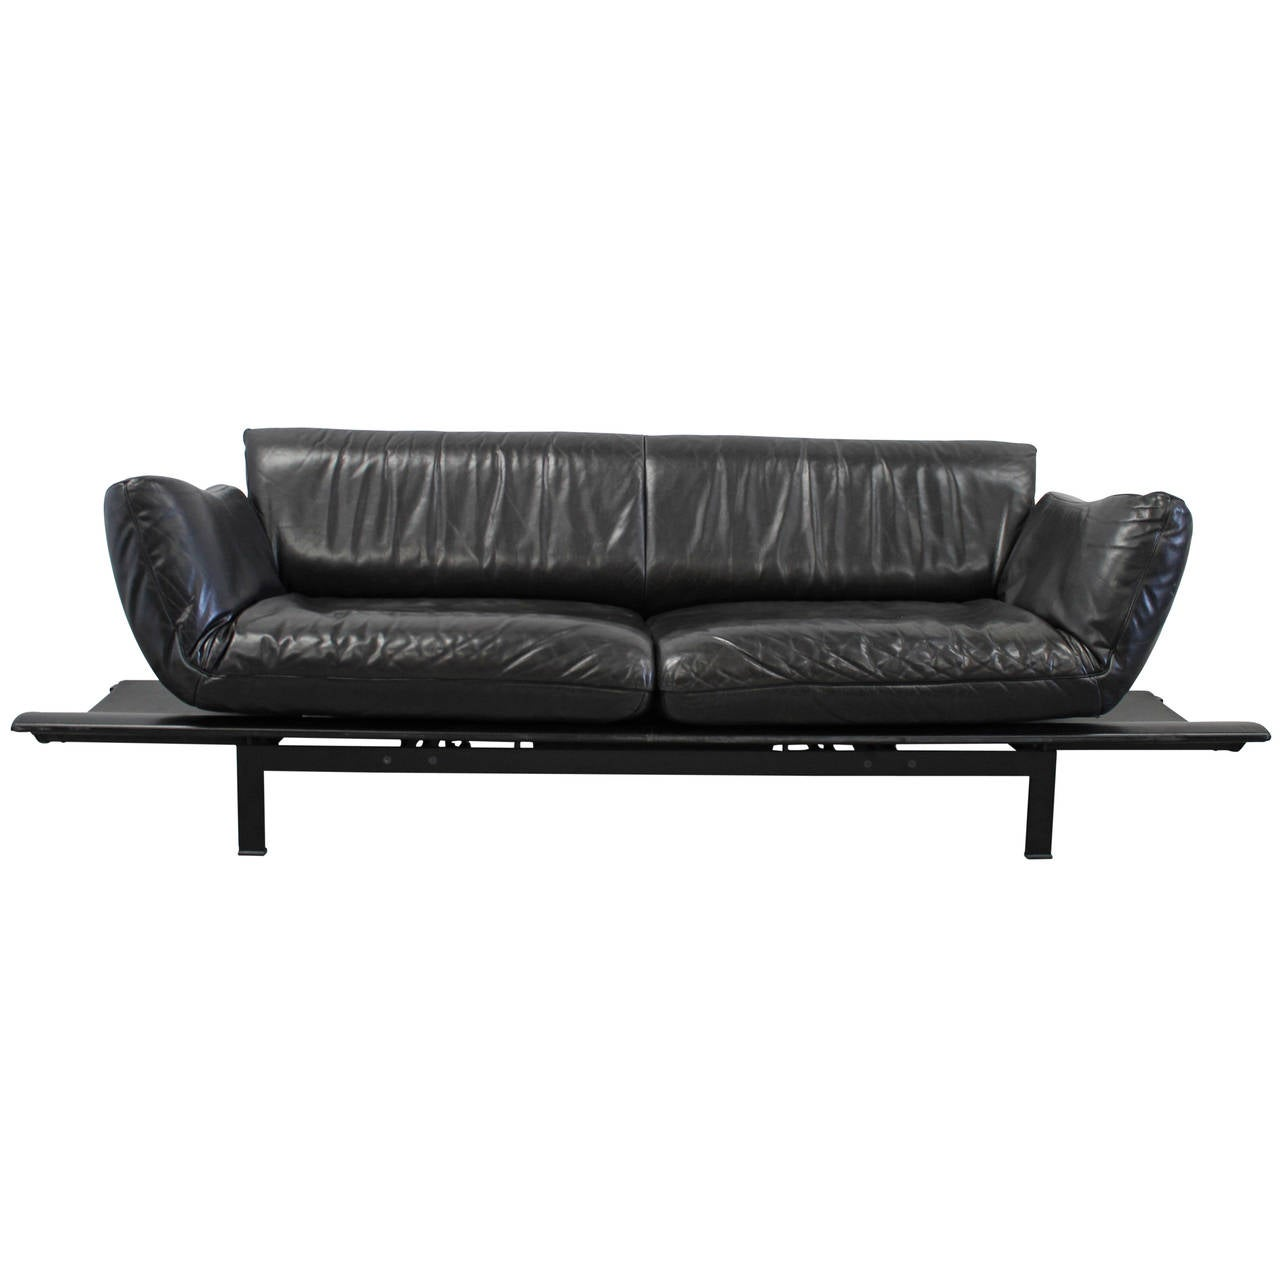 de sede ds 140 large sofa or chaise with tables in black leather by reto frigg for sale at 1stdibs. Black Bedroom Furniture Sets. Home Design Ideas